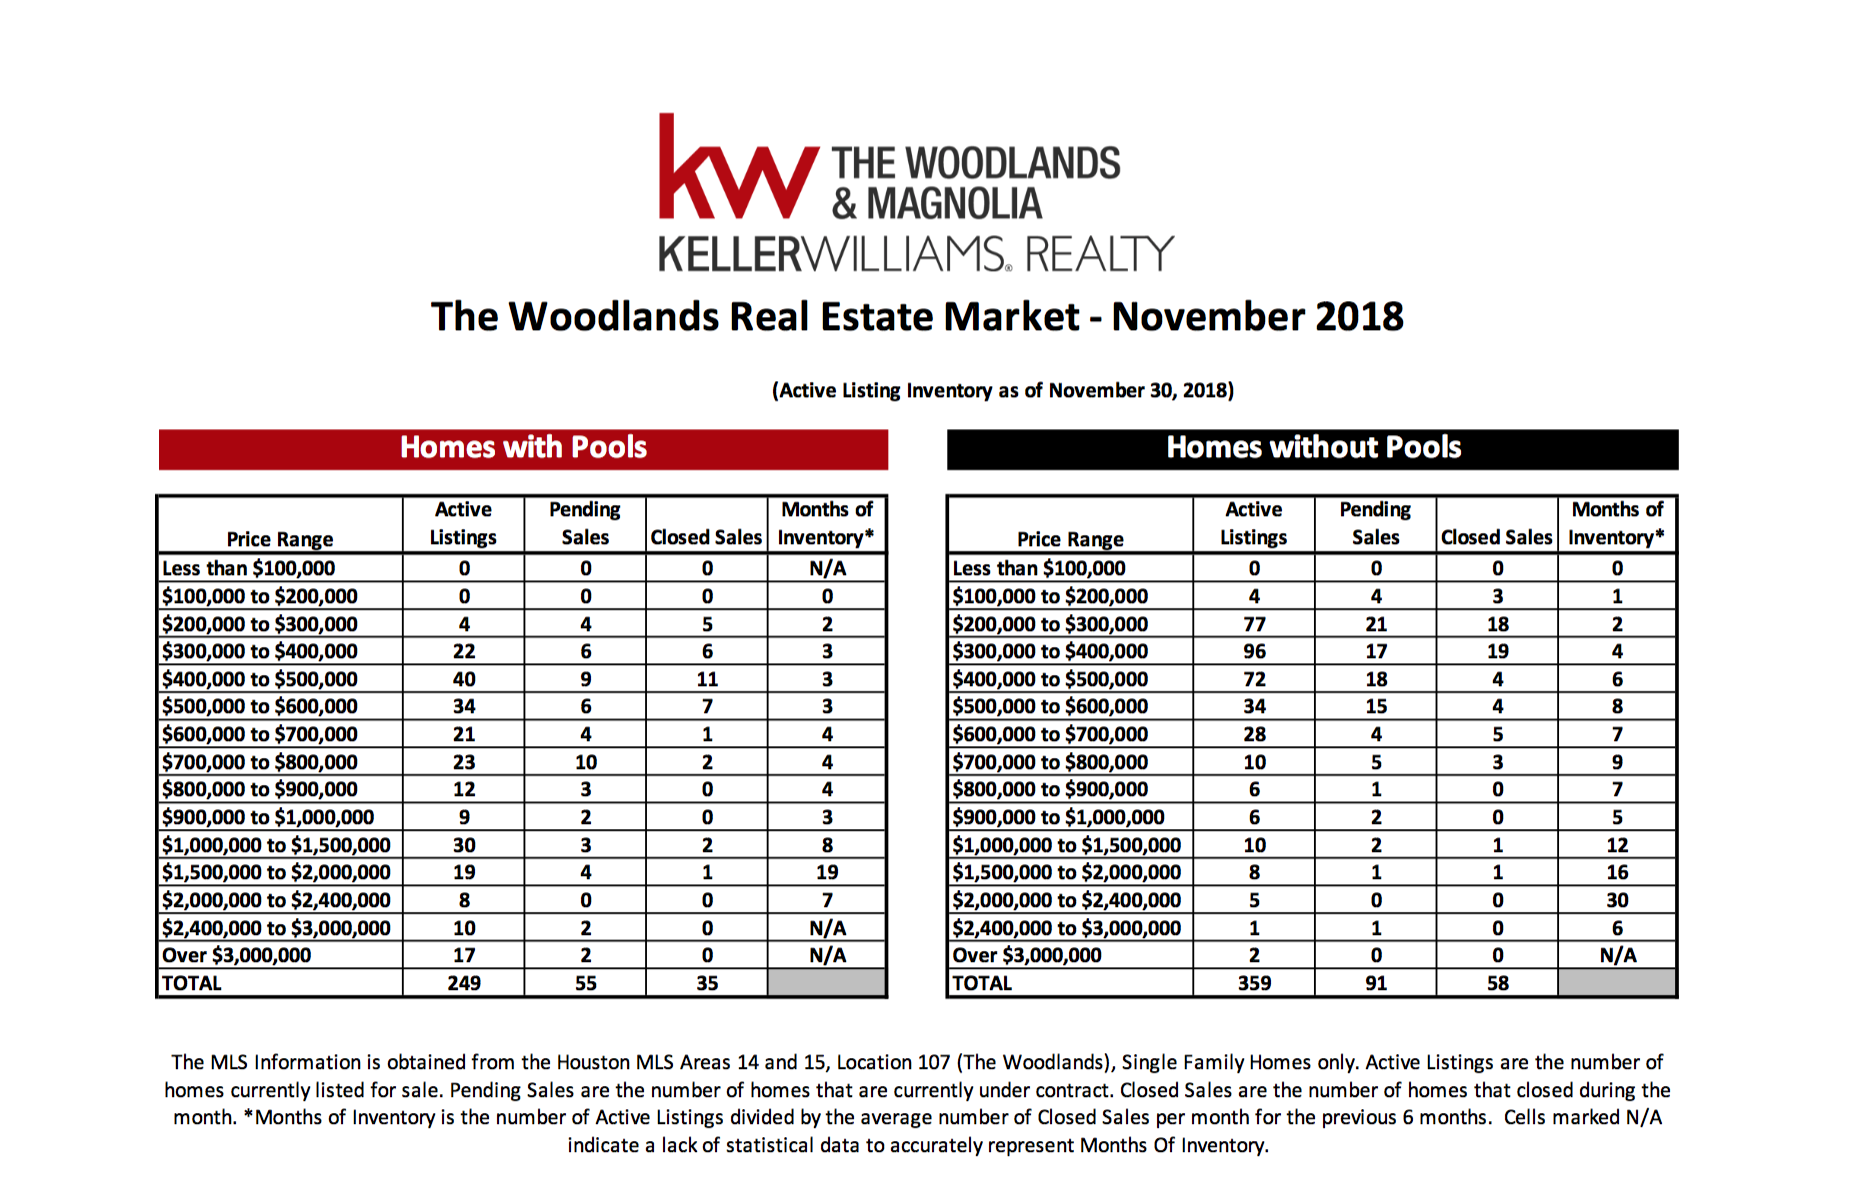 , November 2018 MarketWatch Report – The Woodlands, KW Woodlands